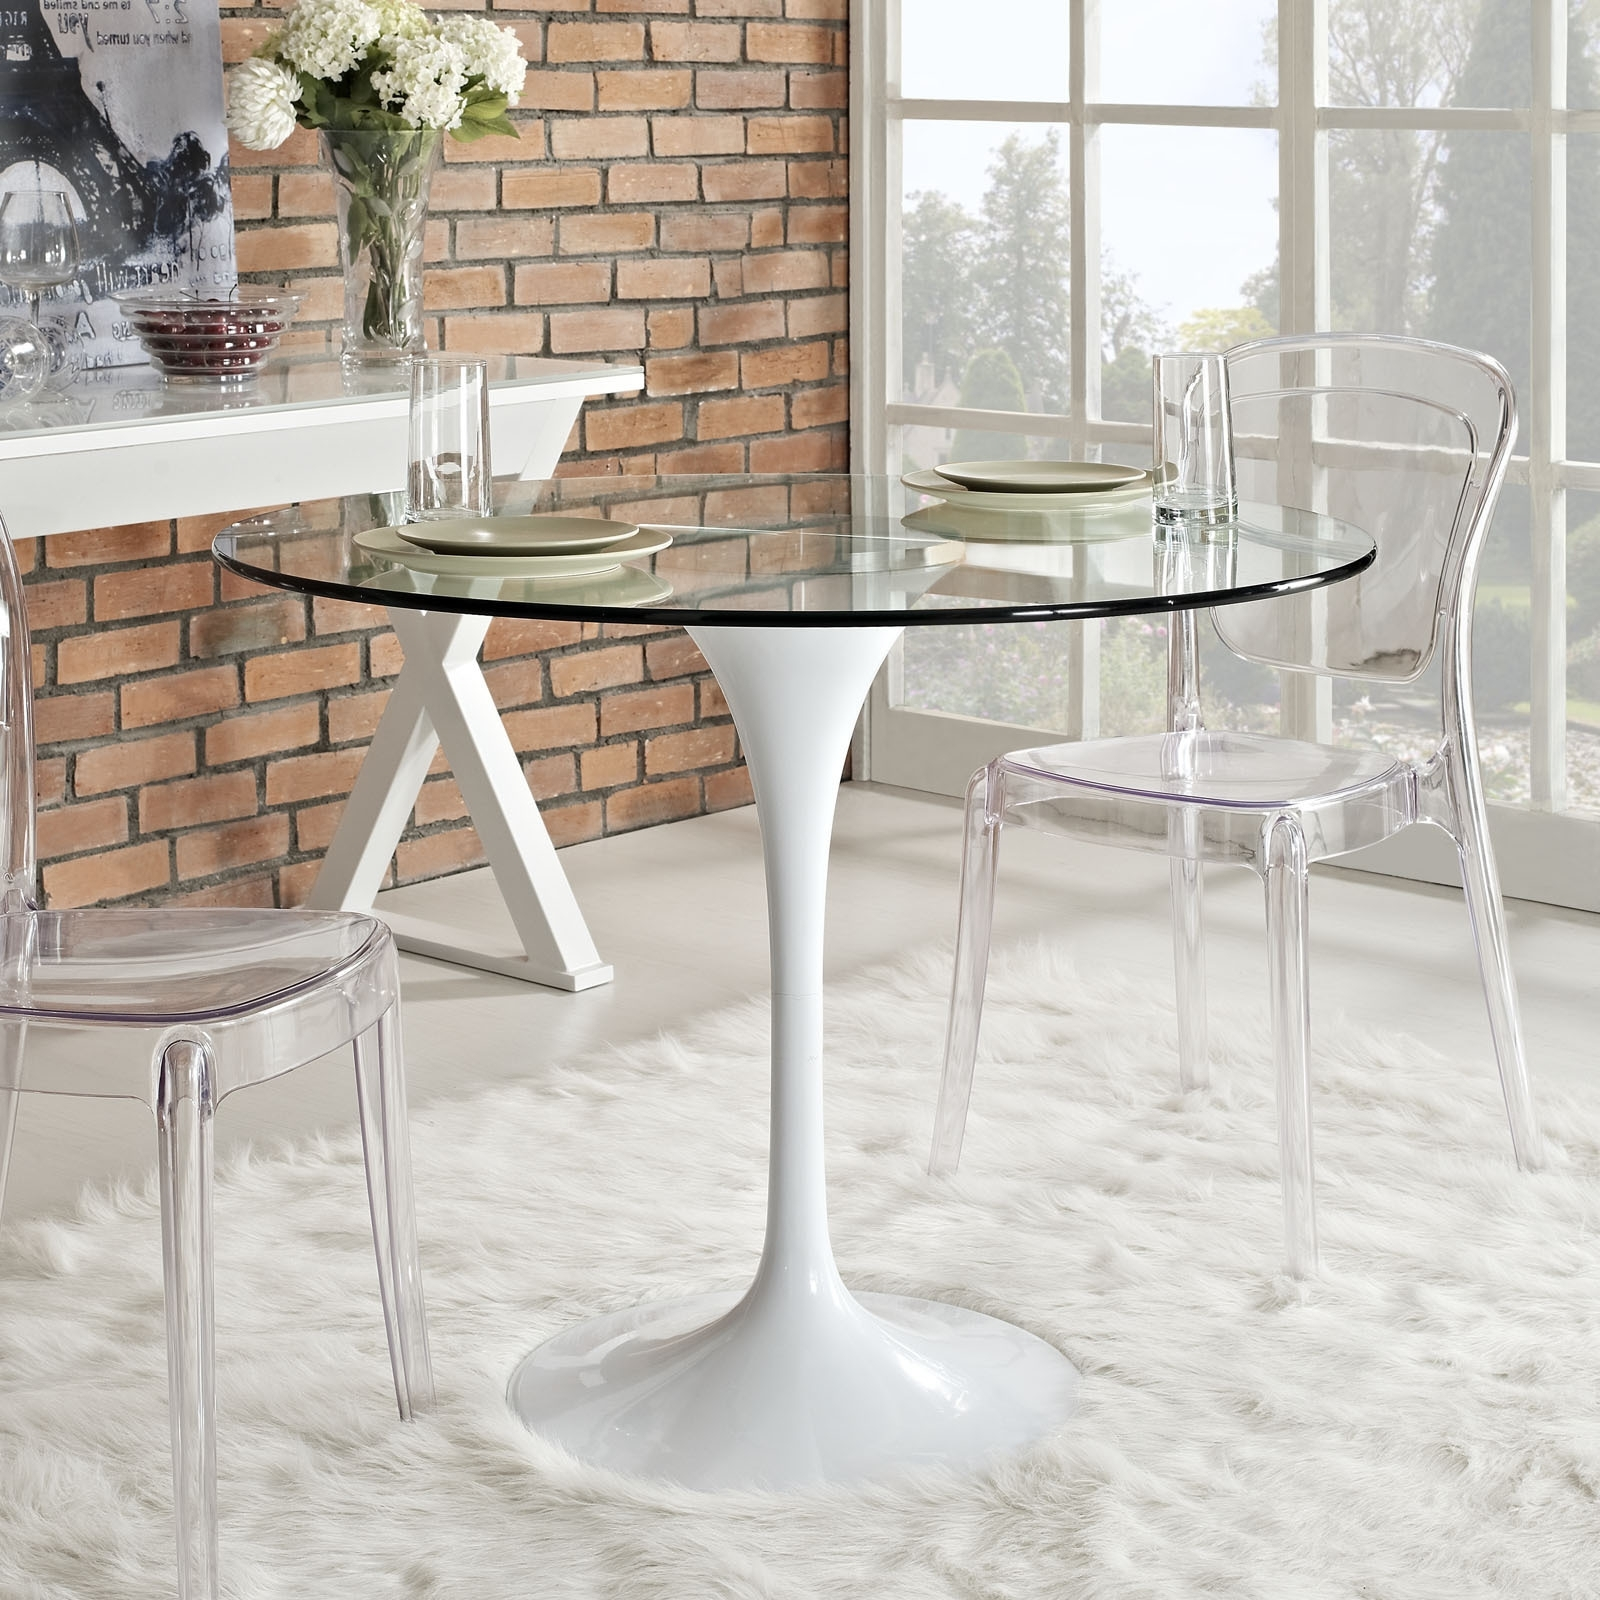 Round Acrylic Dining Tables With Regard To Latest Acrylic Kitchen Table Fresh Kitchen Cool Clear Glass Dining Table (View 3 of 25)